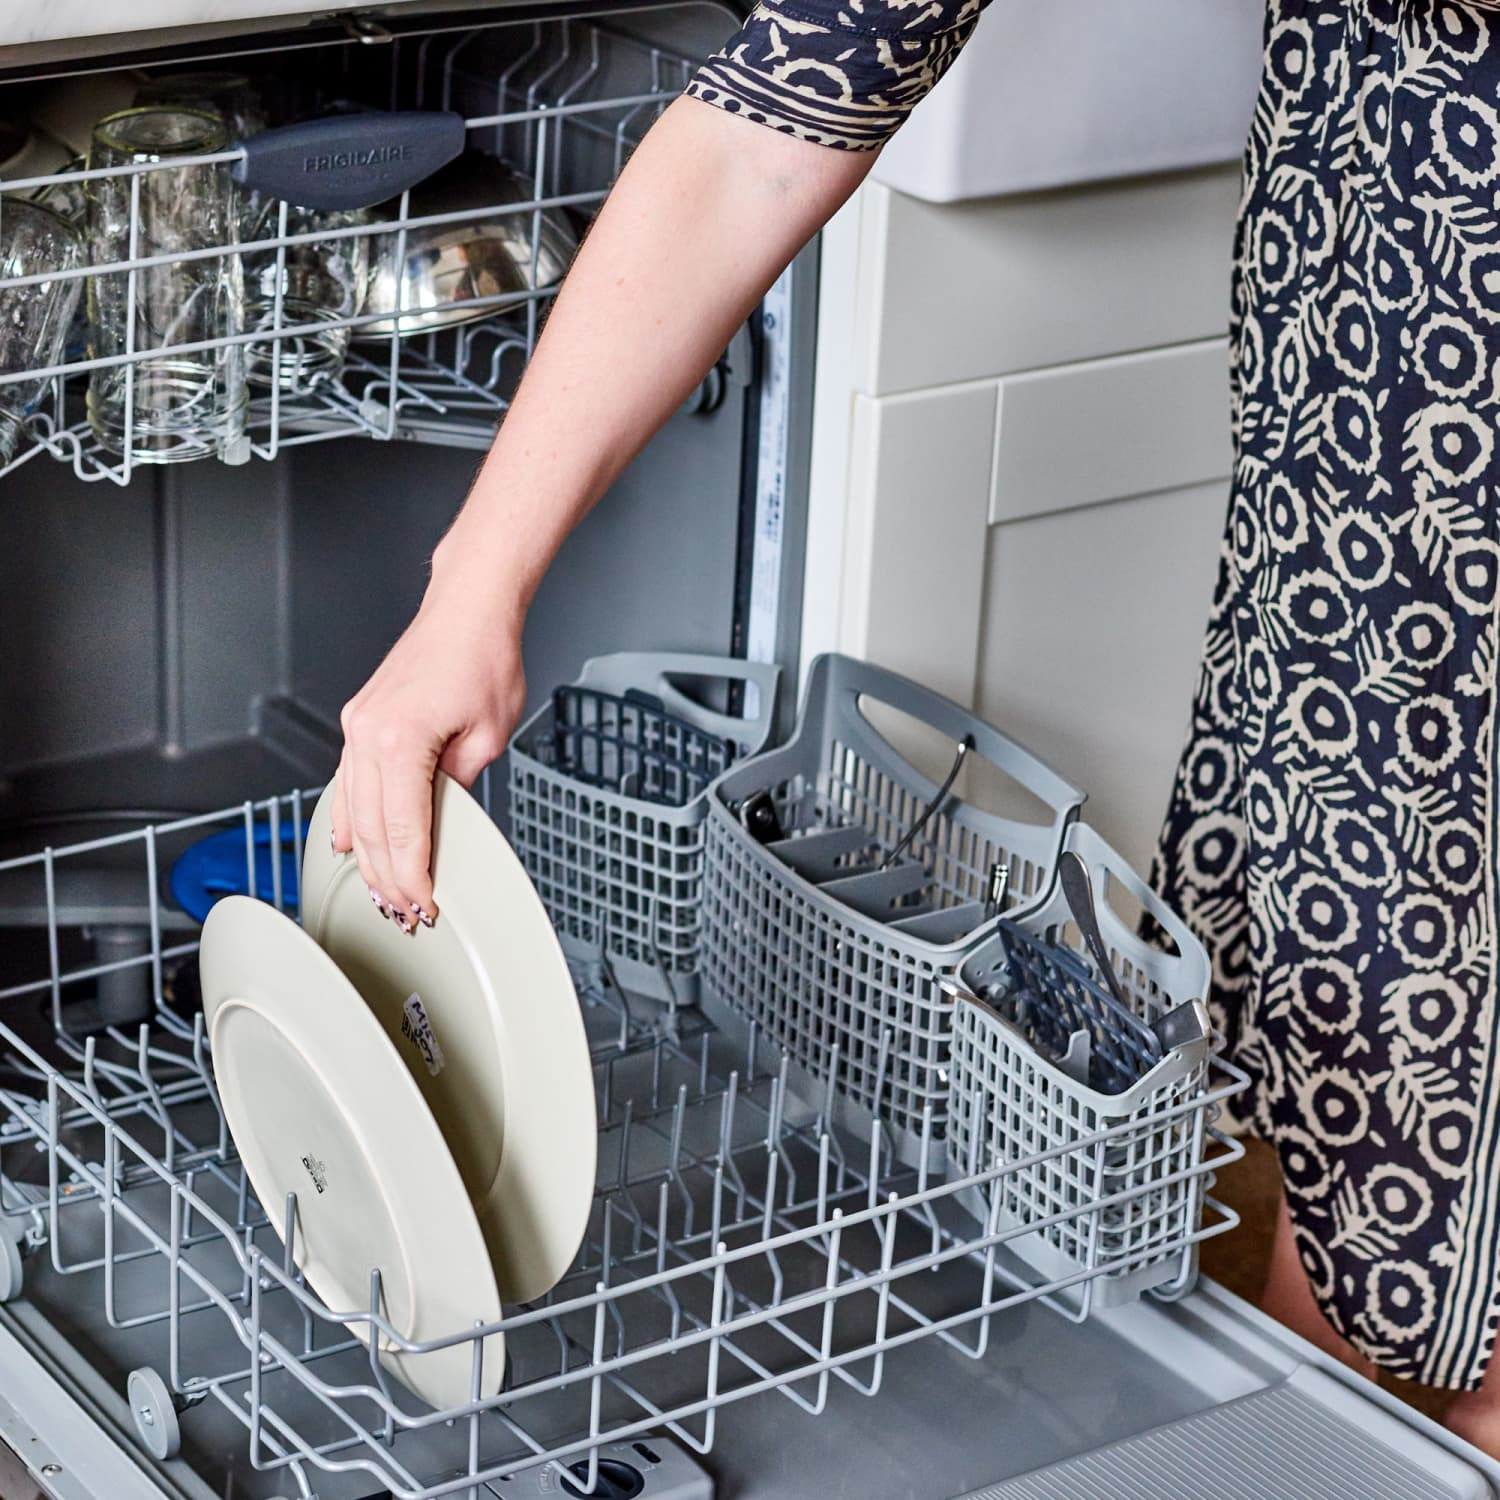 affordable dishwasher in singapore